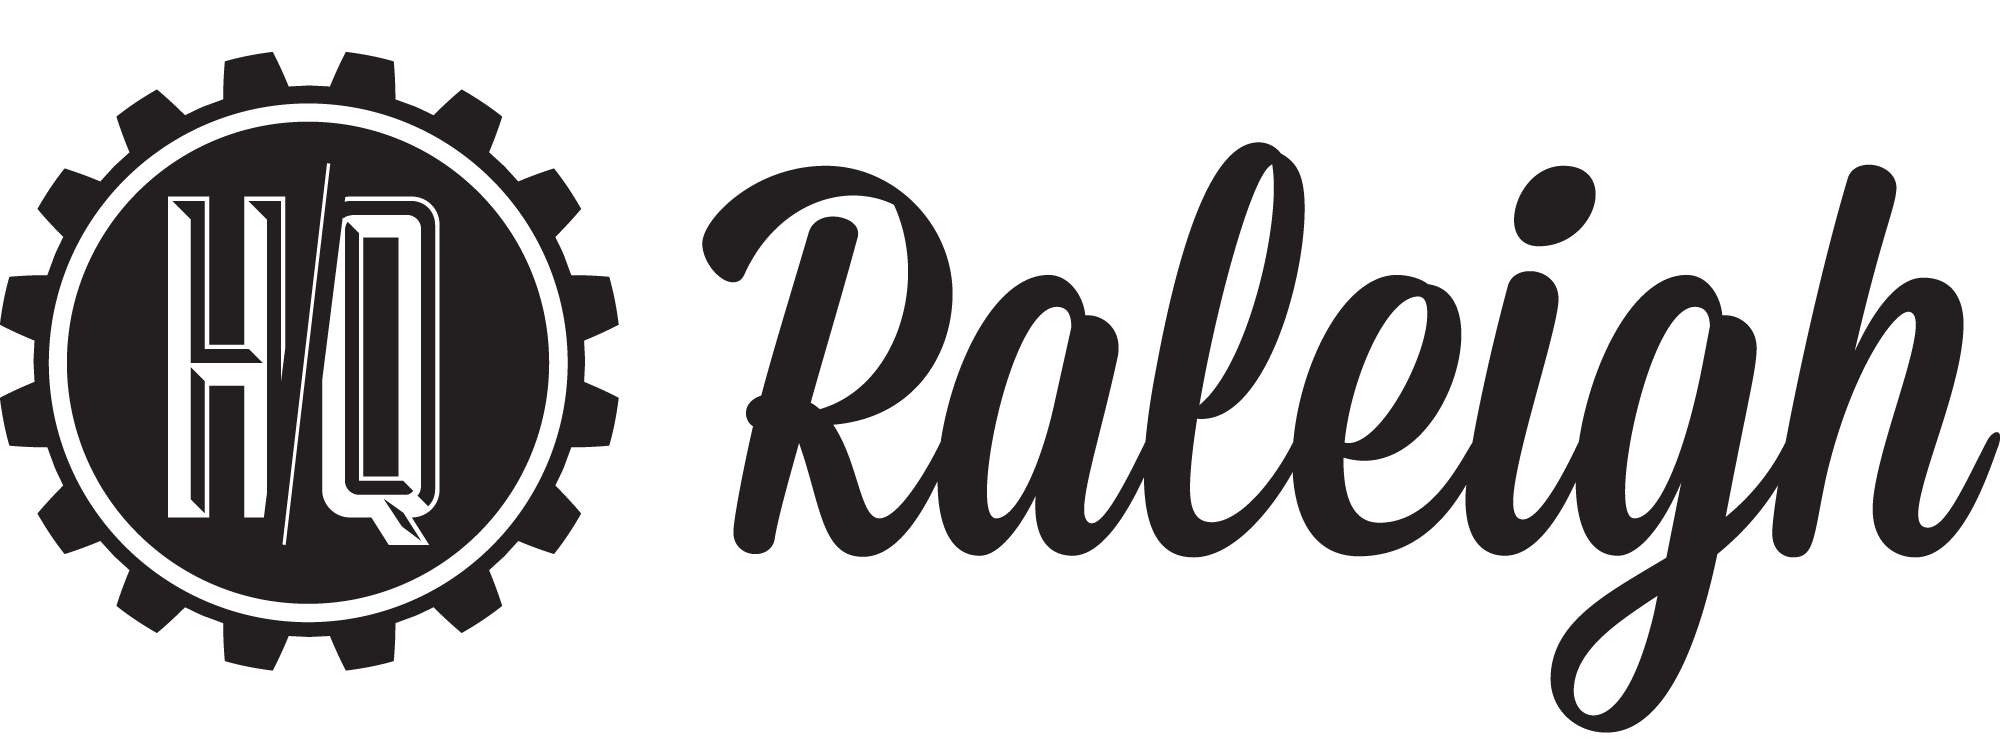 HQ Raleigh.png